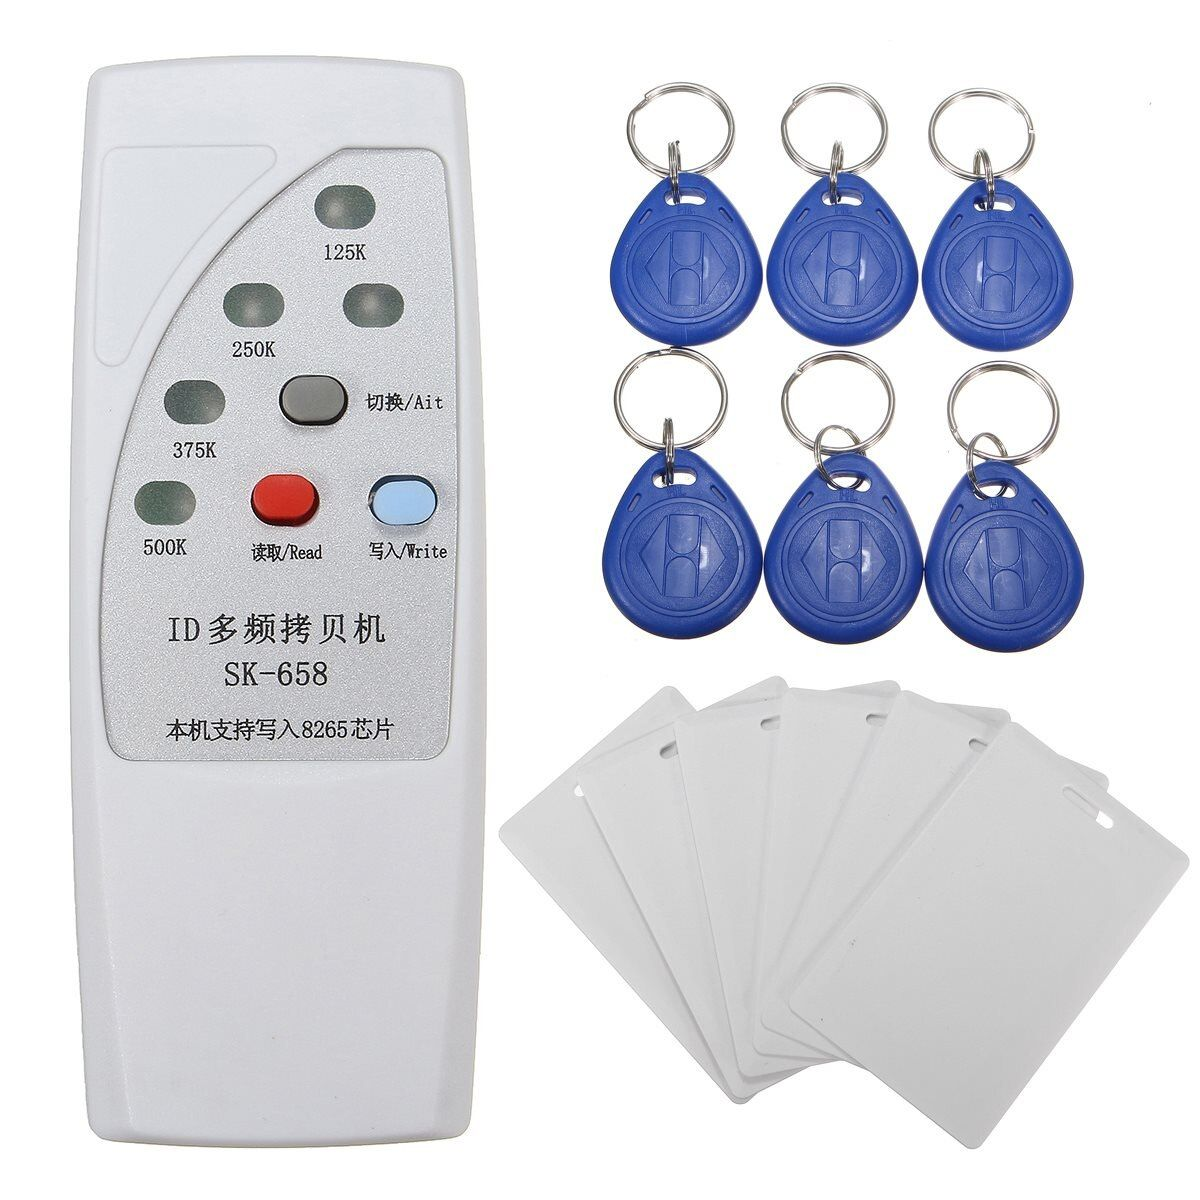 NEW Handheld 125KHz RFID ID Card Duplicator Programmer Reader Writer Copier Duplicator + 6 Pcs Cards+6 PcsTags Kit